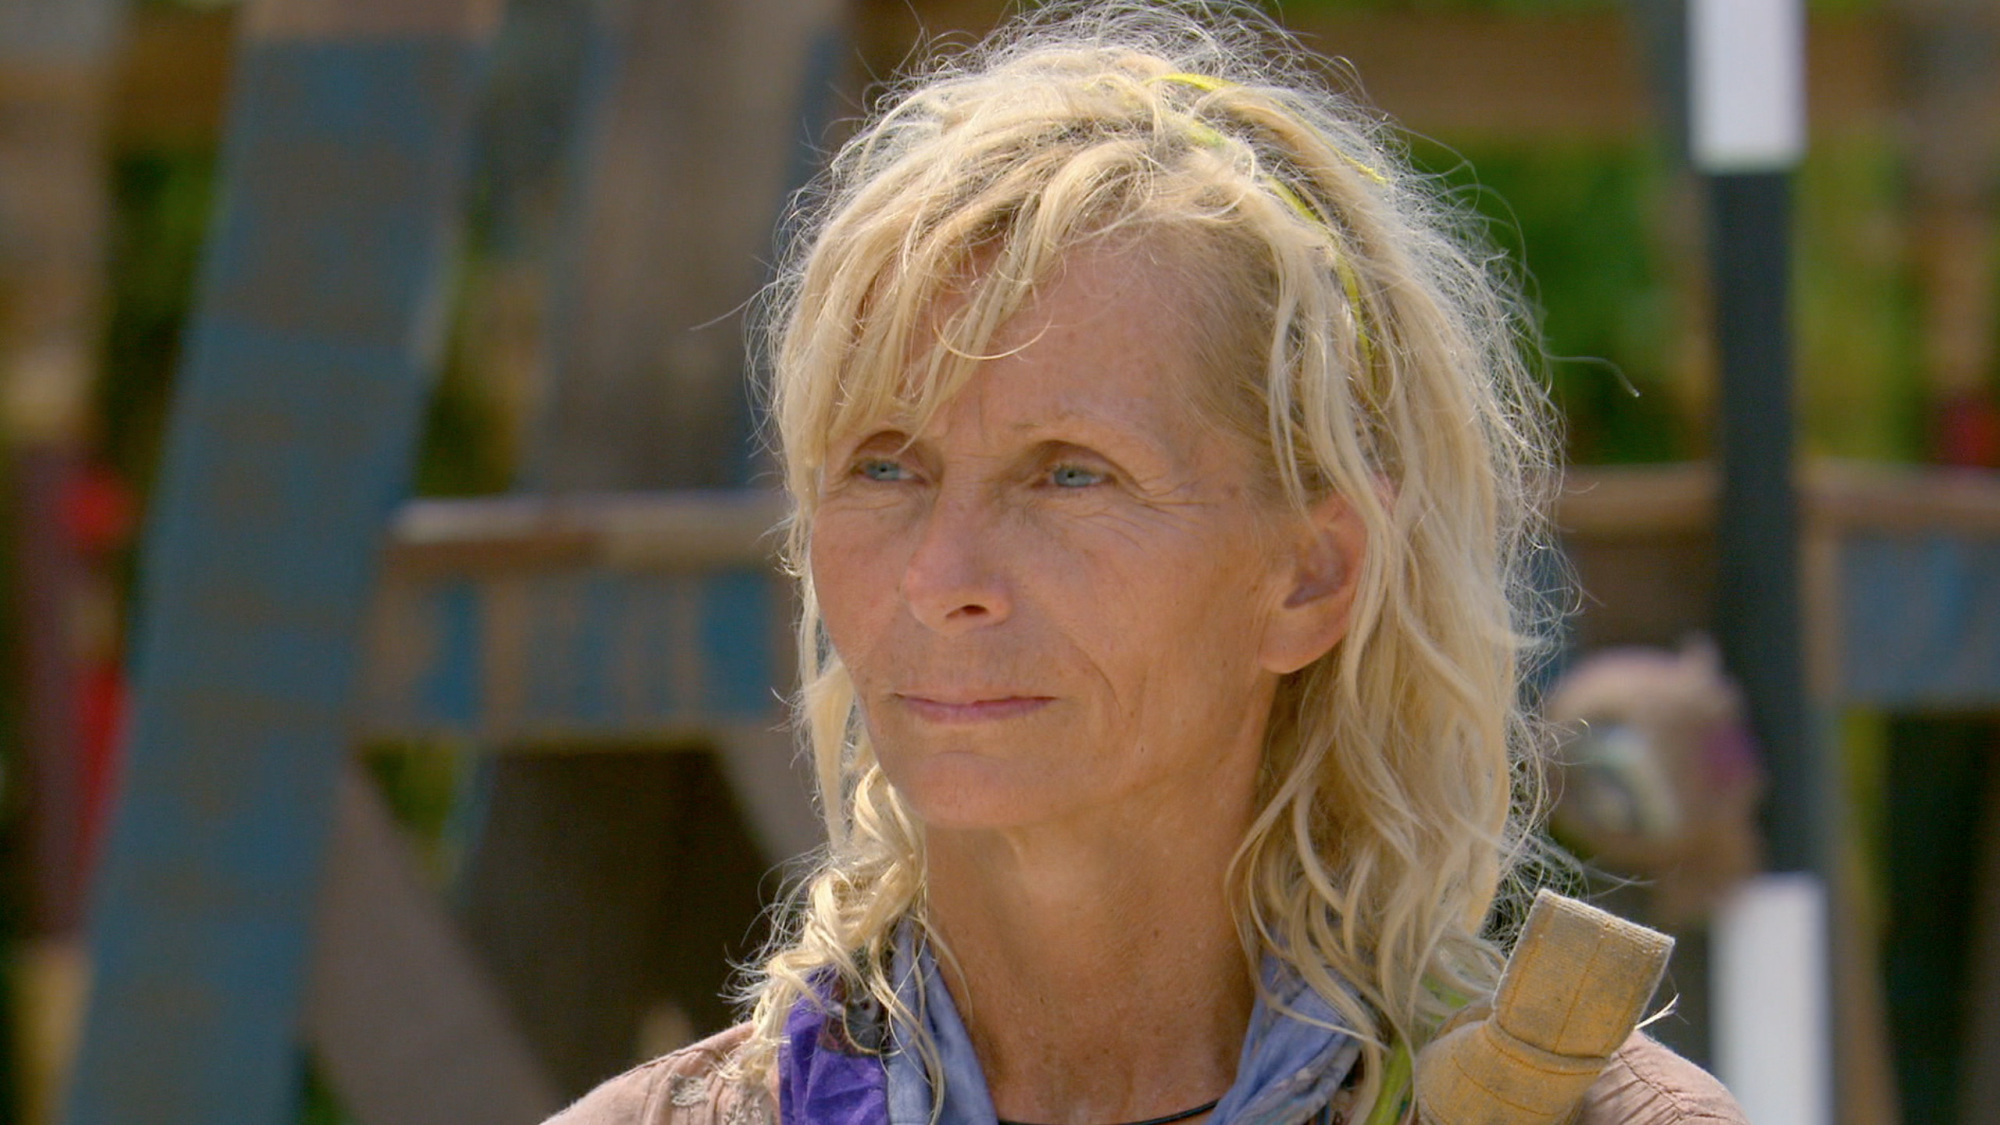 Tina in Season 27 Episode 12